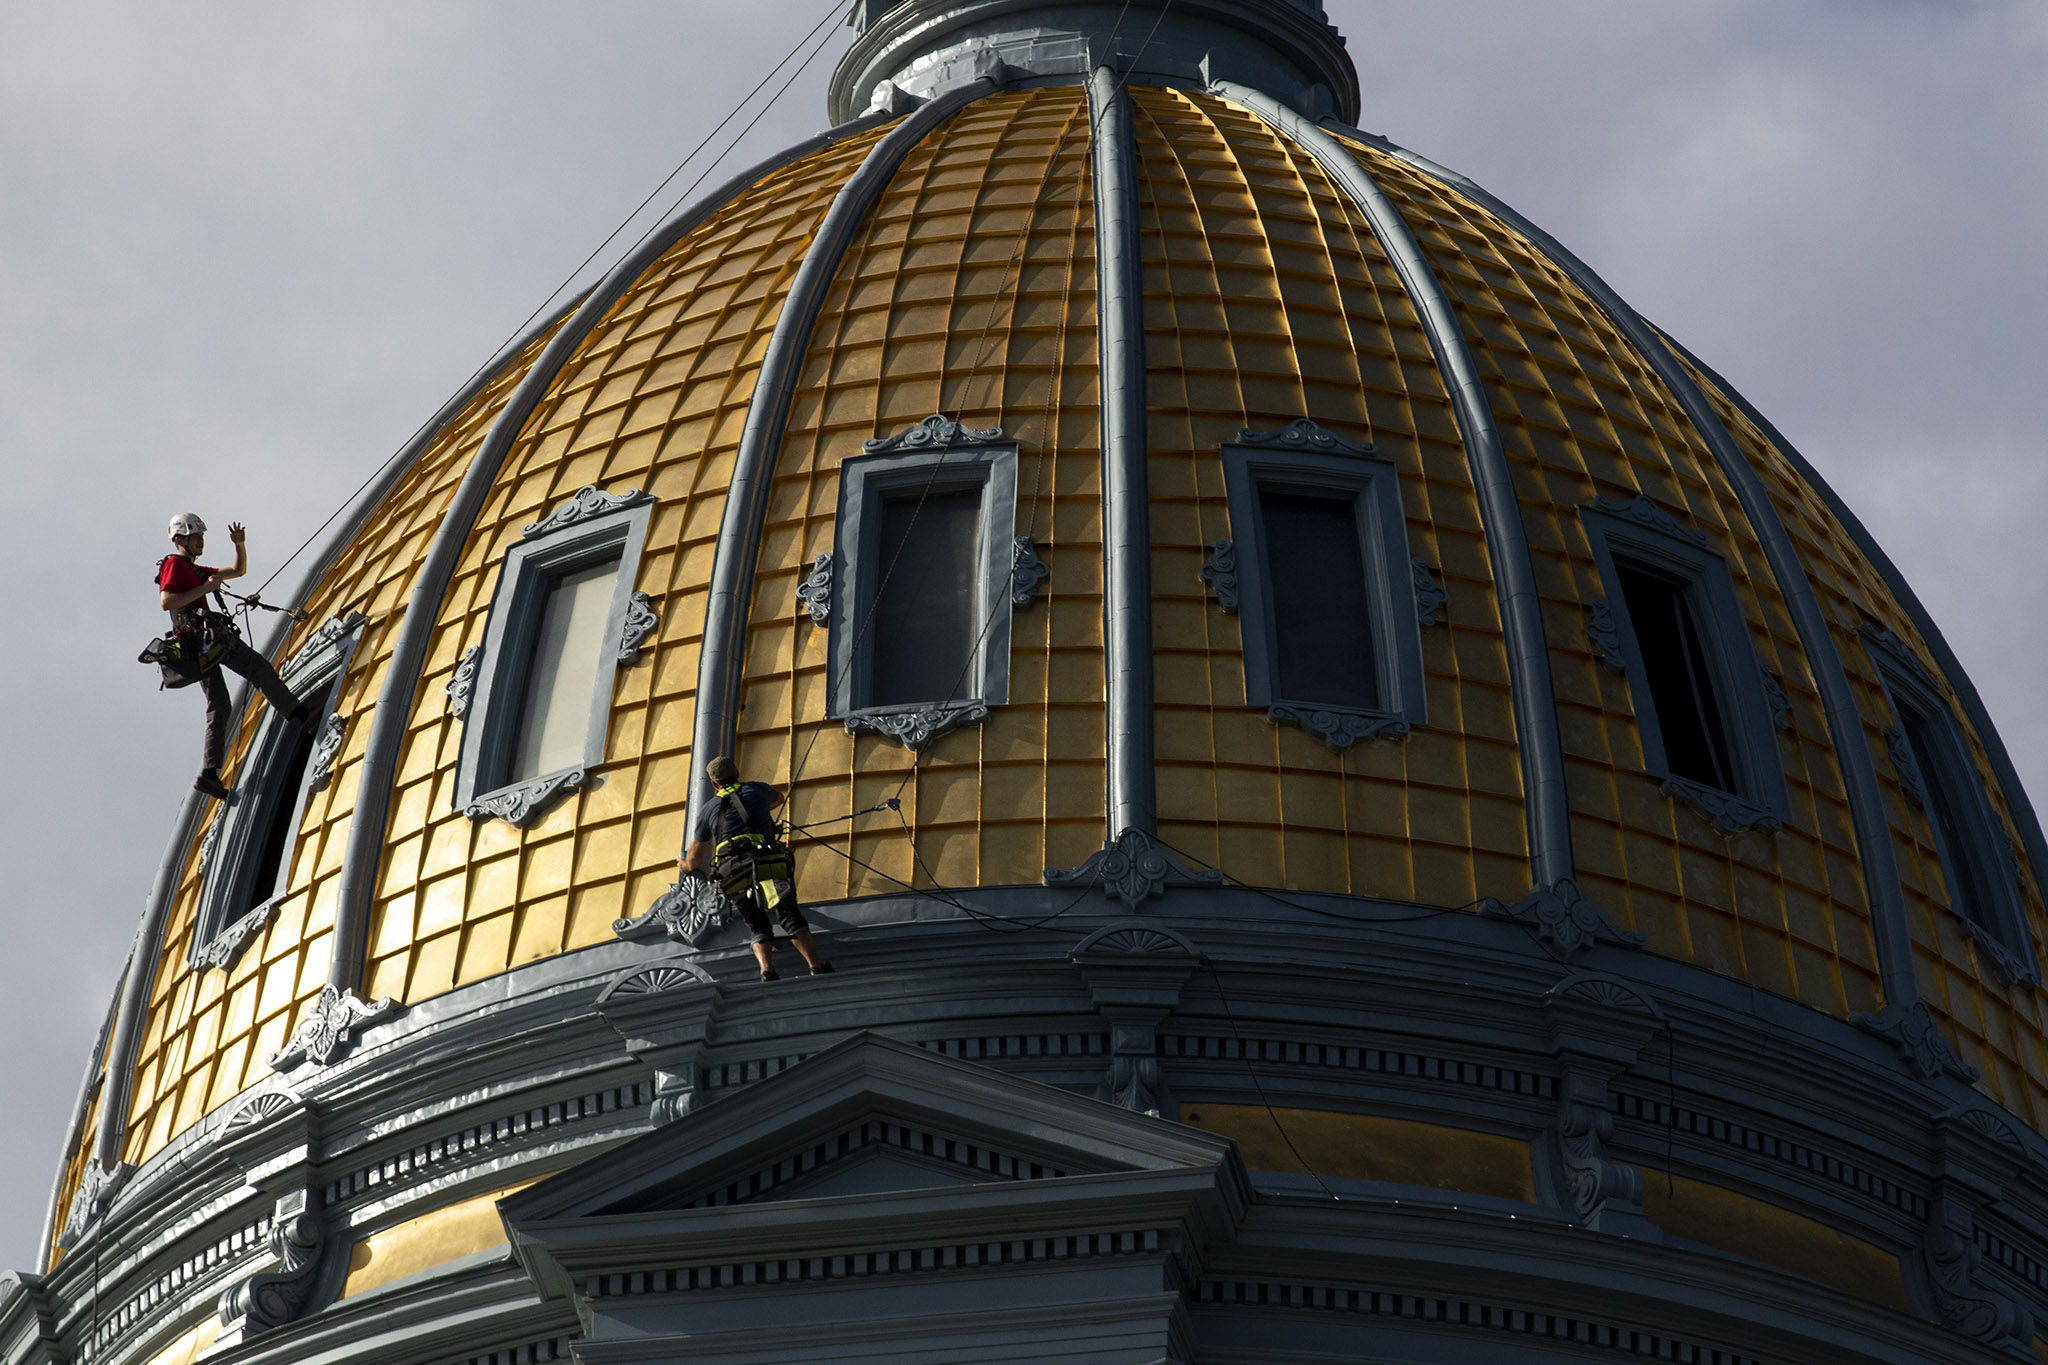 Nothing to see here, just a couple of guys rappelling off the gold dome. June 24, 2021.